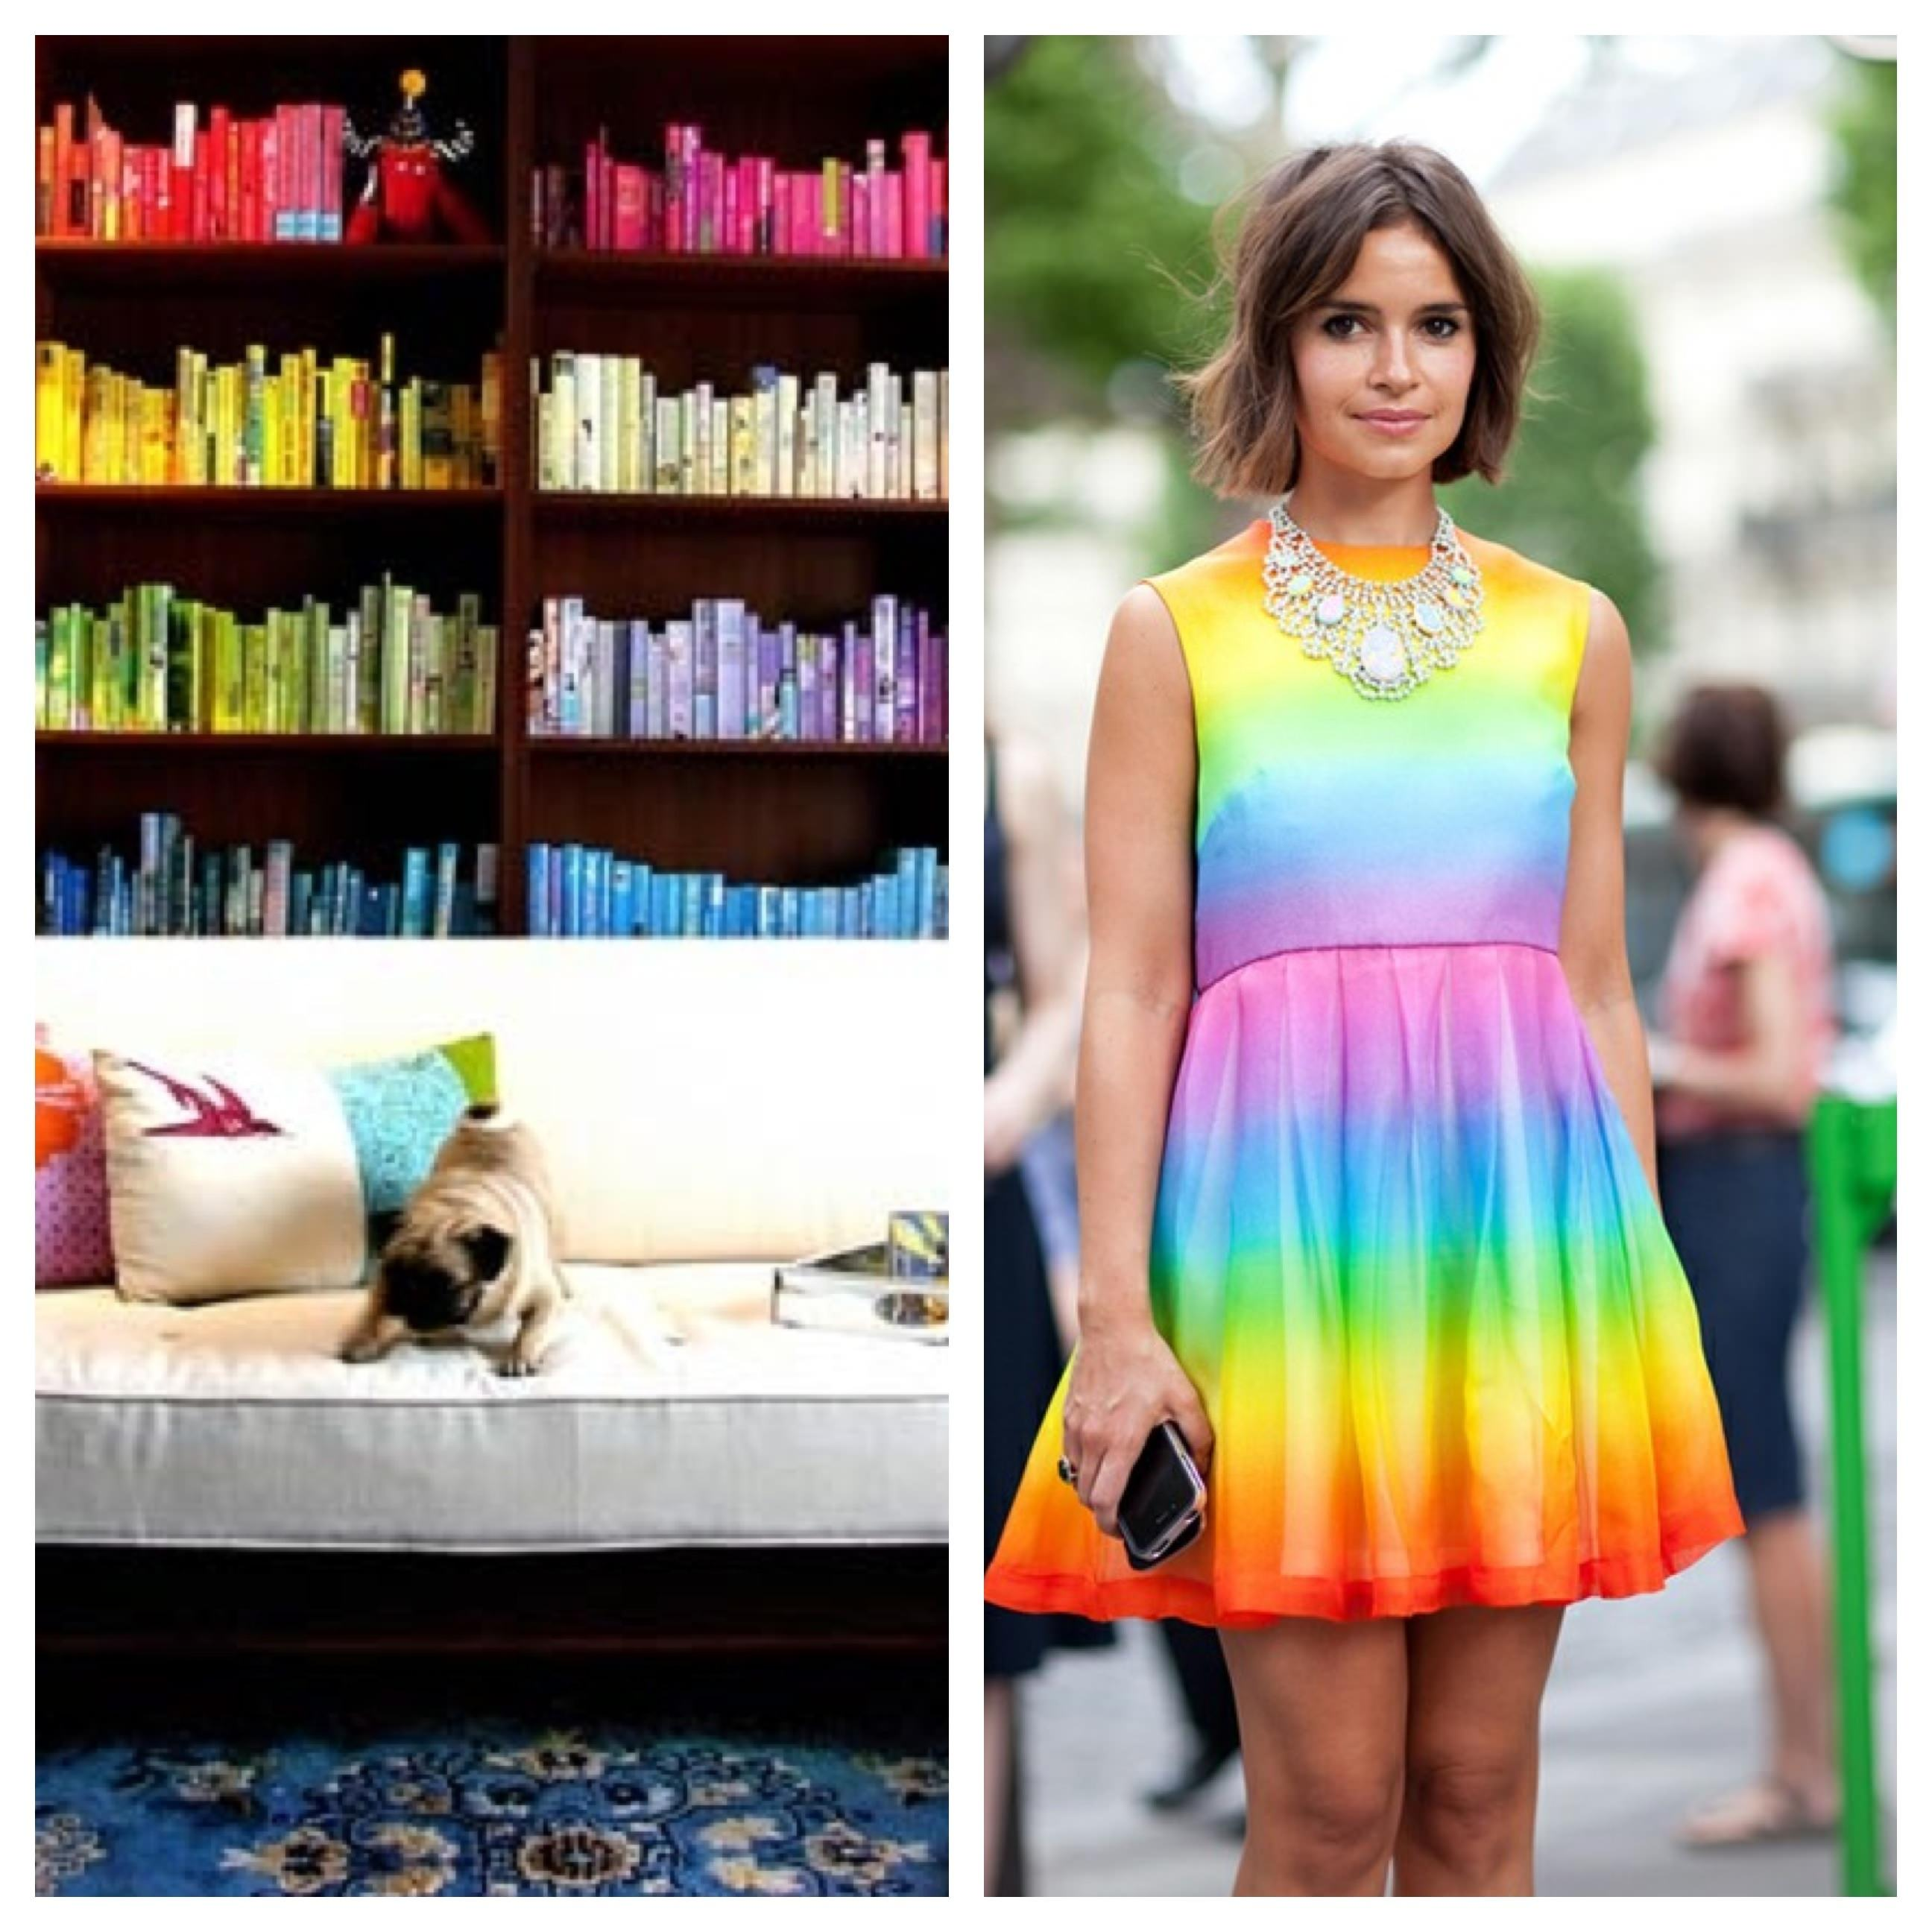 Fashion Week, New York Fashion Week, Model, Runway, Catwalk, skinny girl, pretty girl, rainbow, rainbow books, rainbow dress, colorful room, colorful dress, white couch, modern home